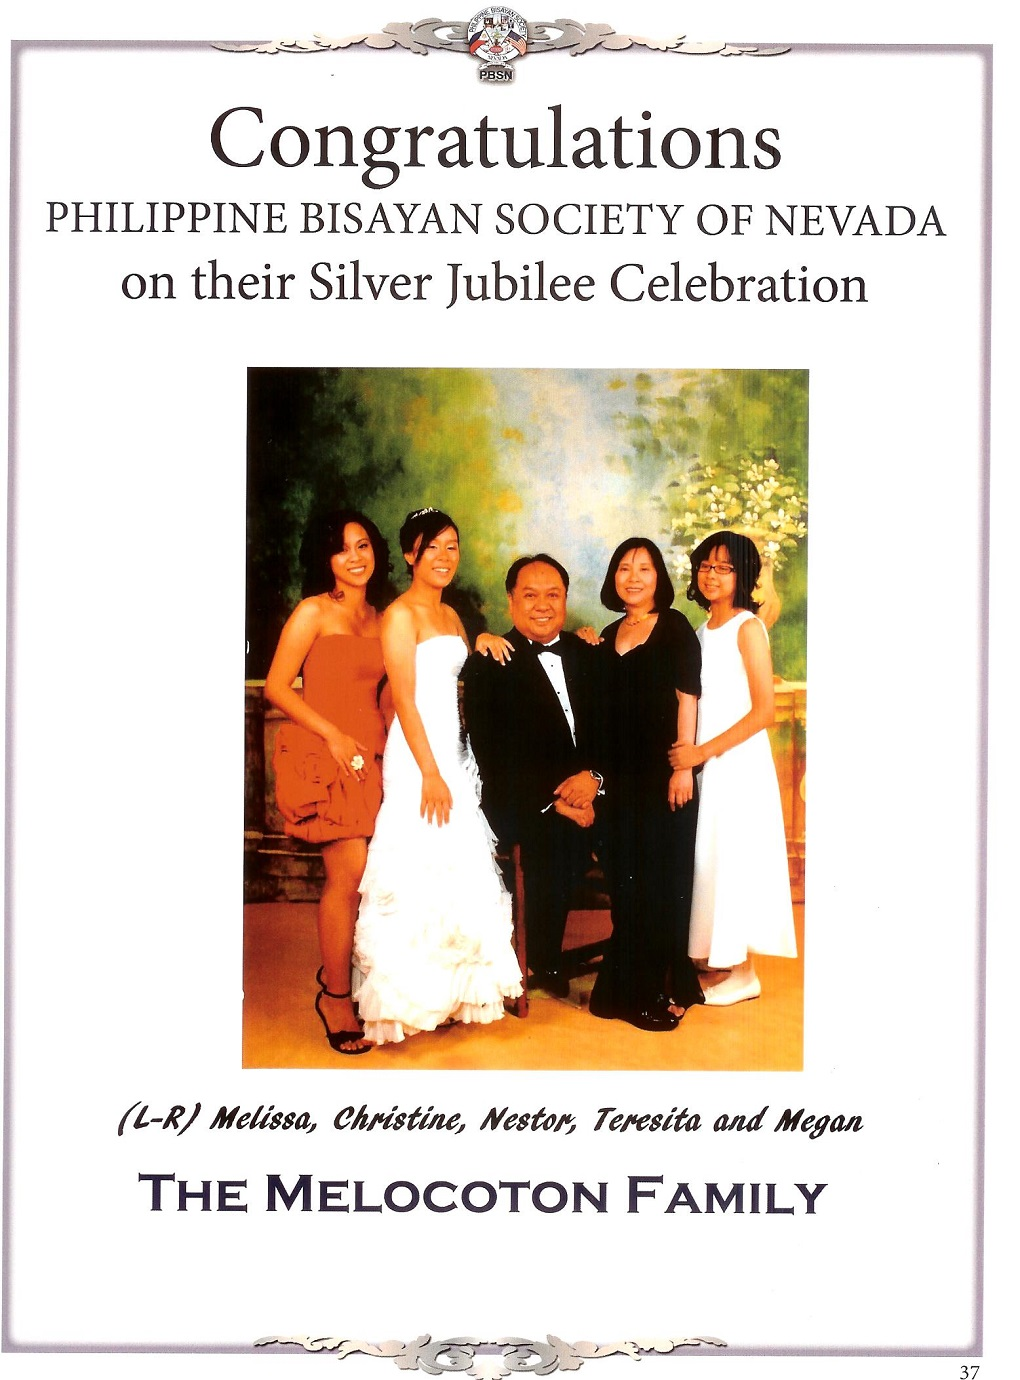 dr. melocoton family greetings